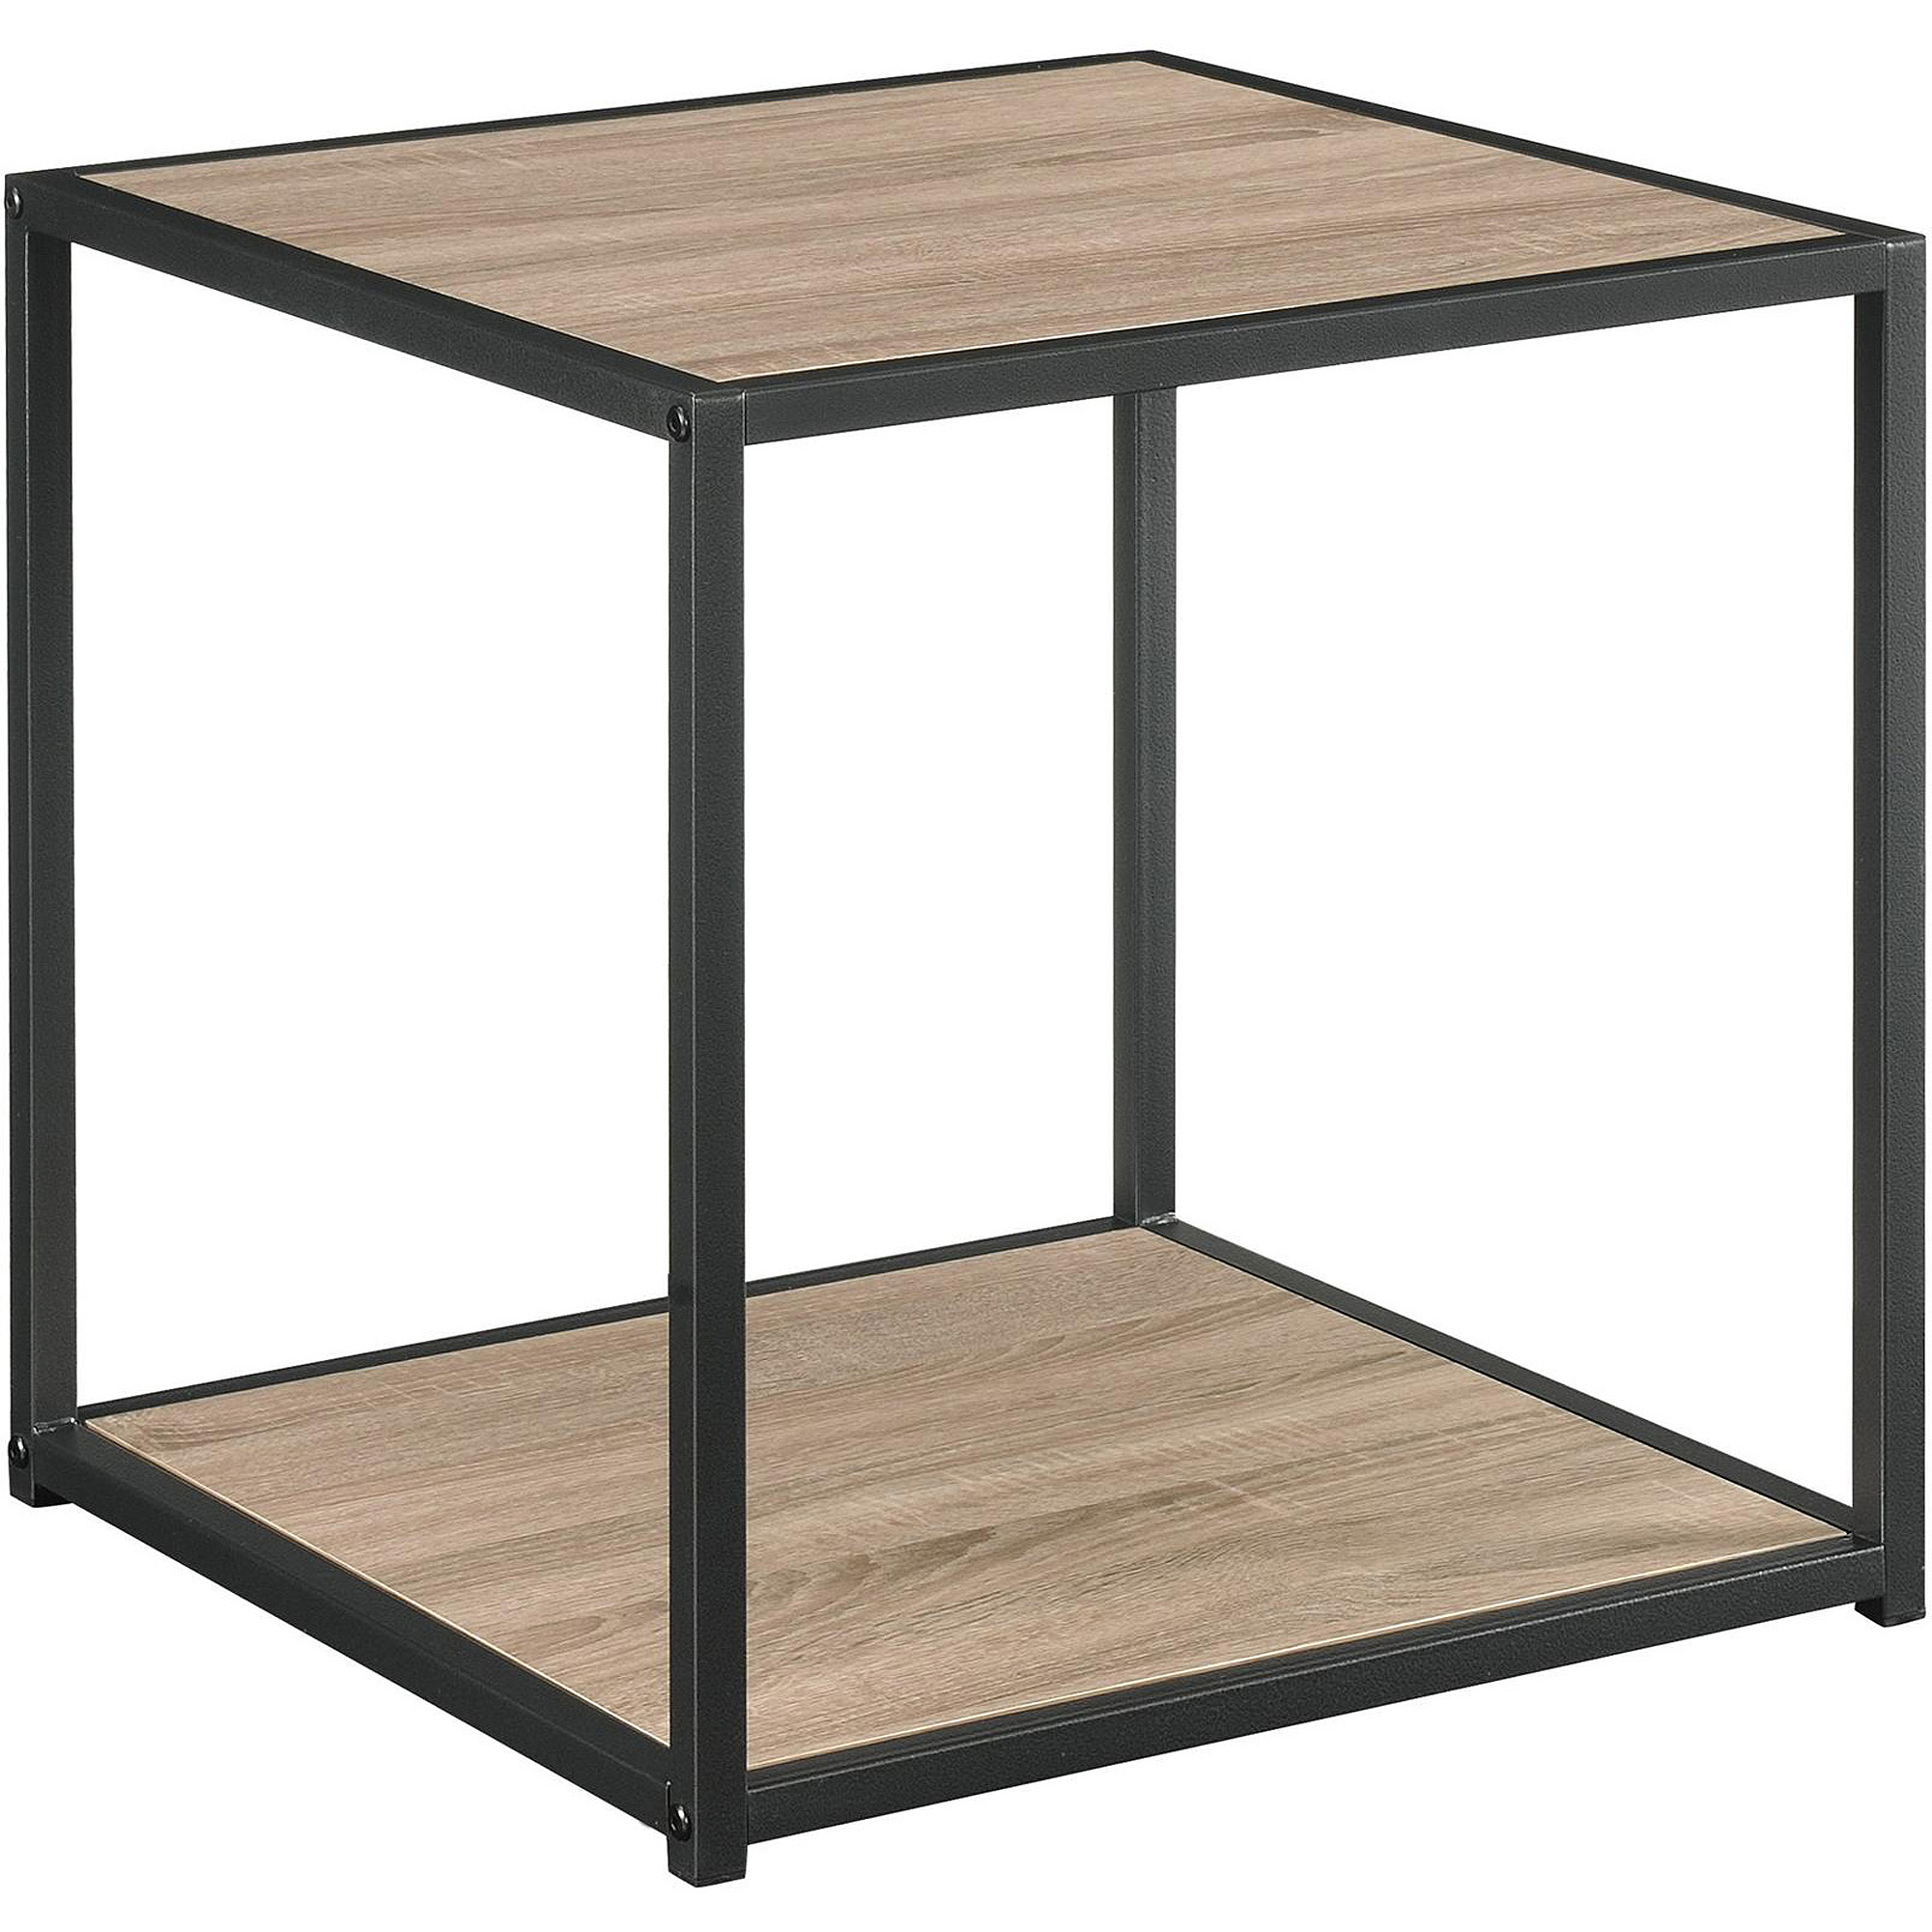 ameriwood home canton accent table with metal frame multiple  - ameriwood home canton accent table with metal frame multiple colors walmartcom